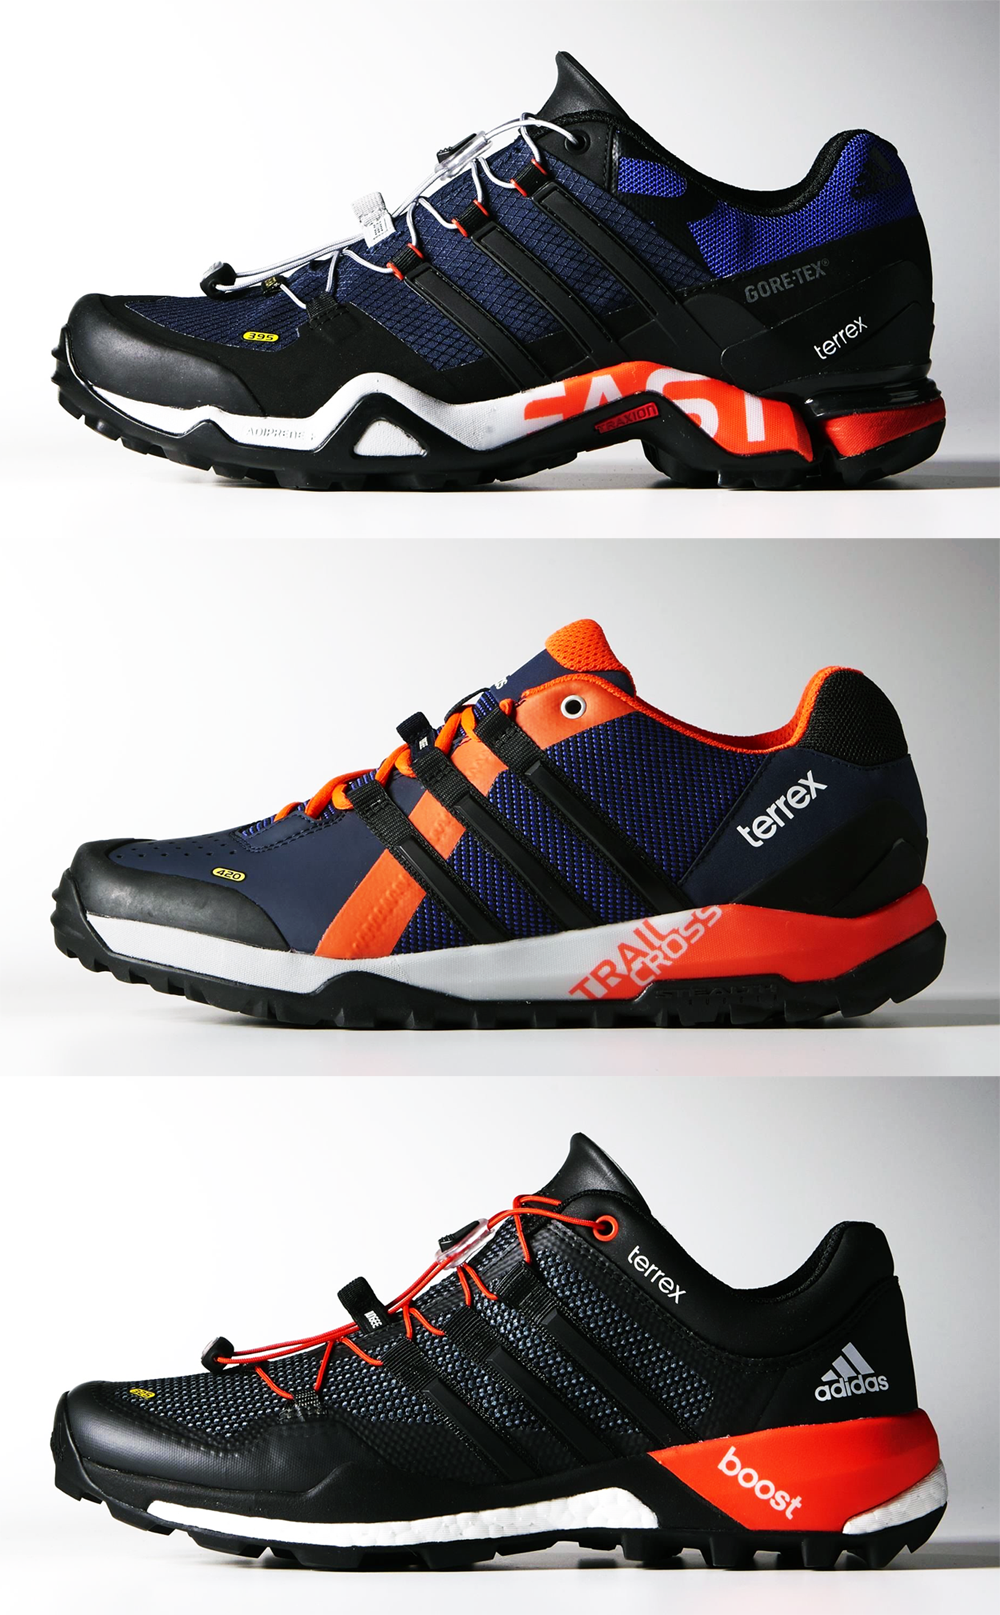 74684184595f7b adidas Terrex trail shoes